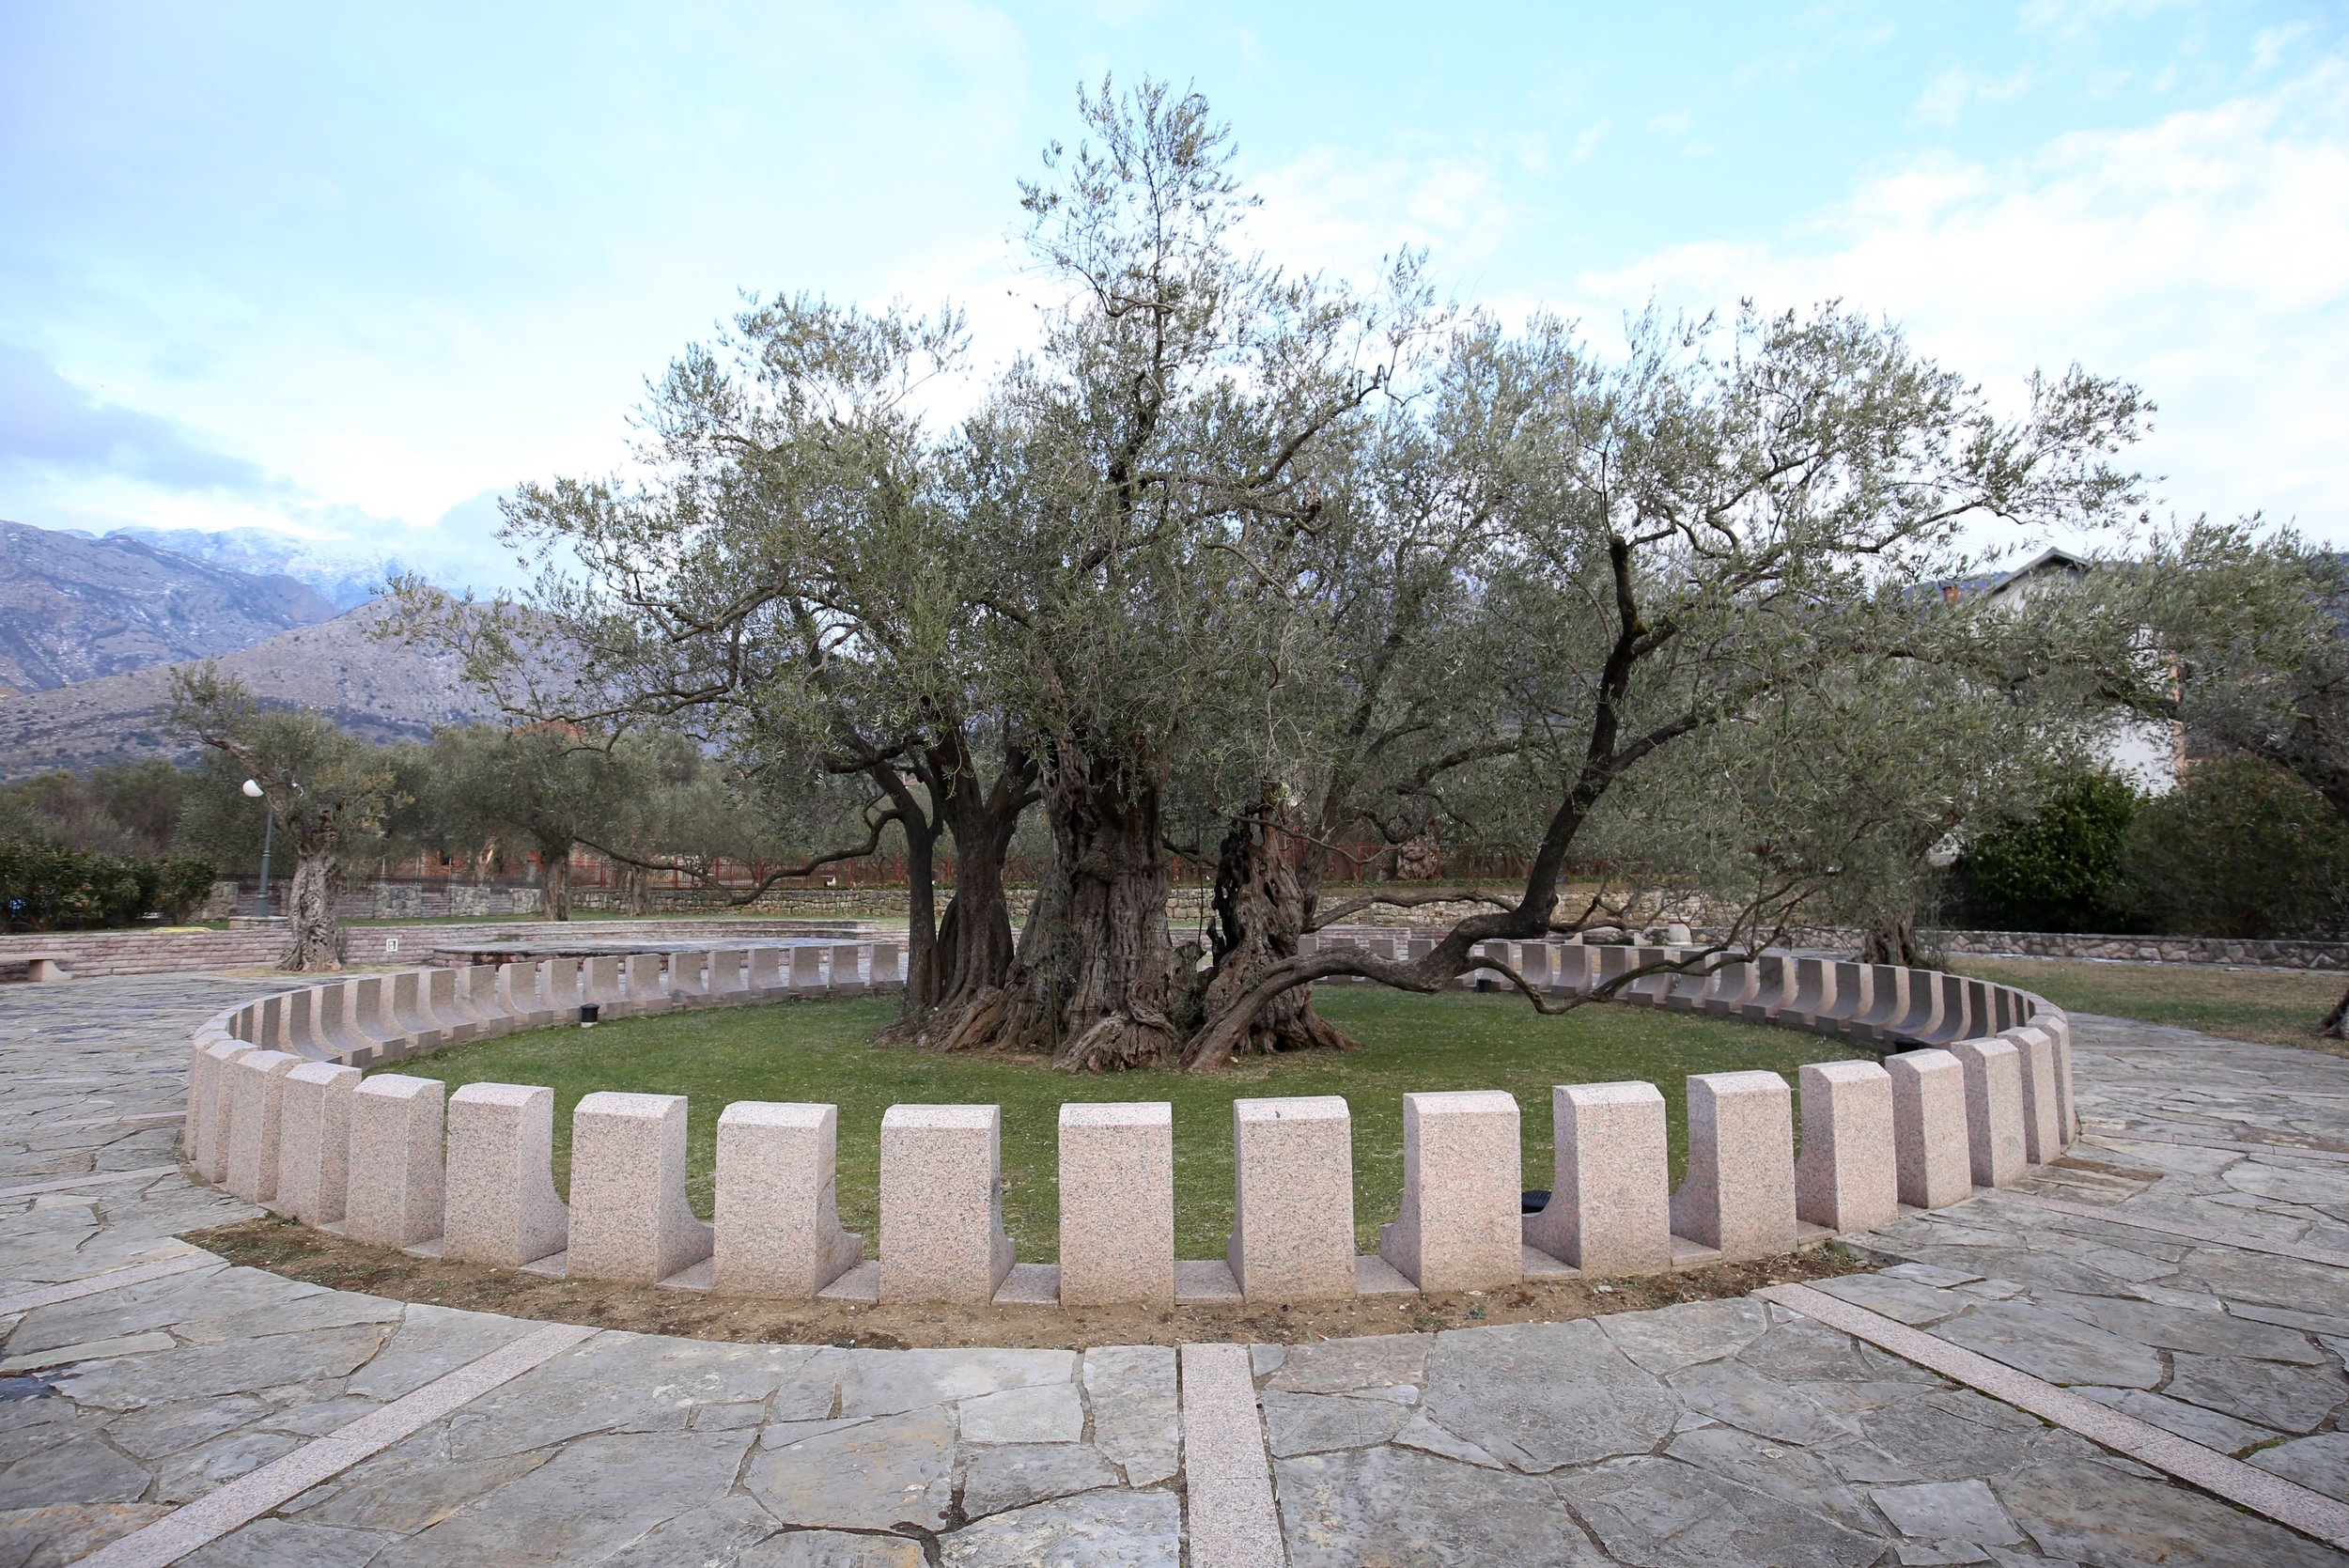 Stara Maslina - oldest olive tree in a circle of stone, Montenegro.